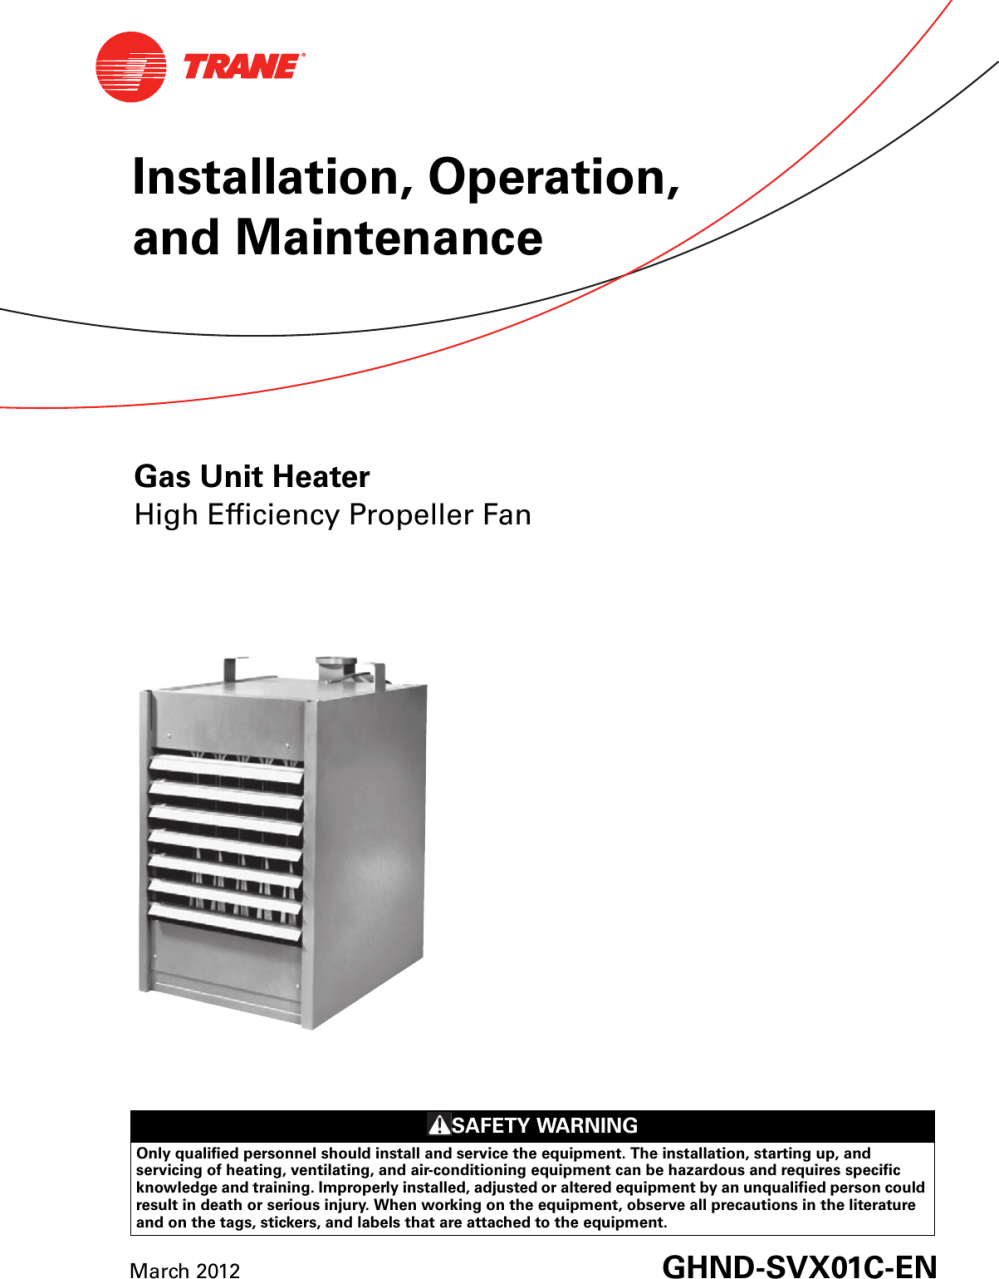 medium resolution of trane gas unit heaters installation and maintenance manual ghnd svx01c en 03 16 2012 installation operation heater high efficiency propeller fan s gh